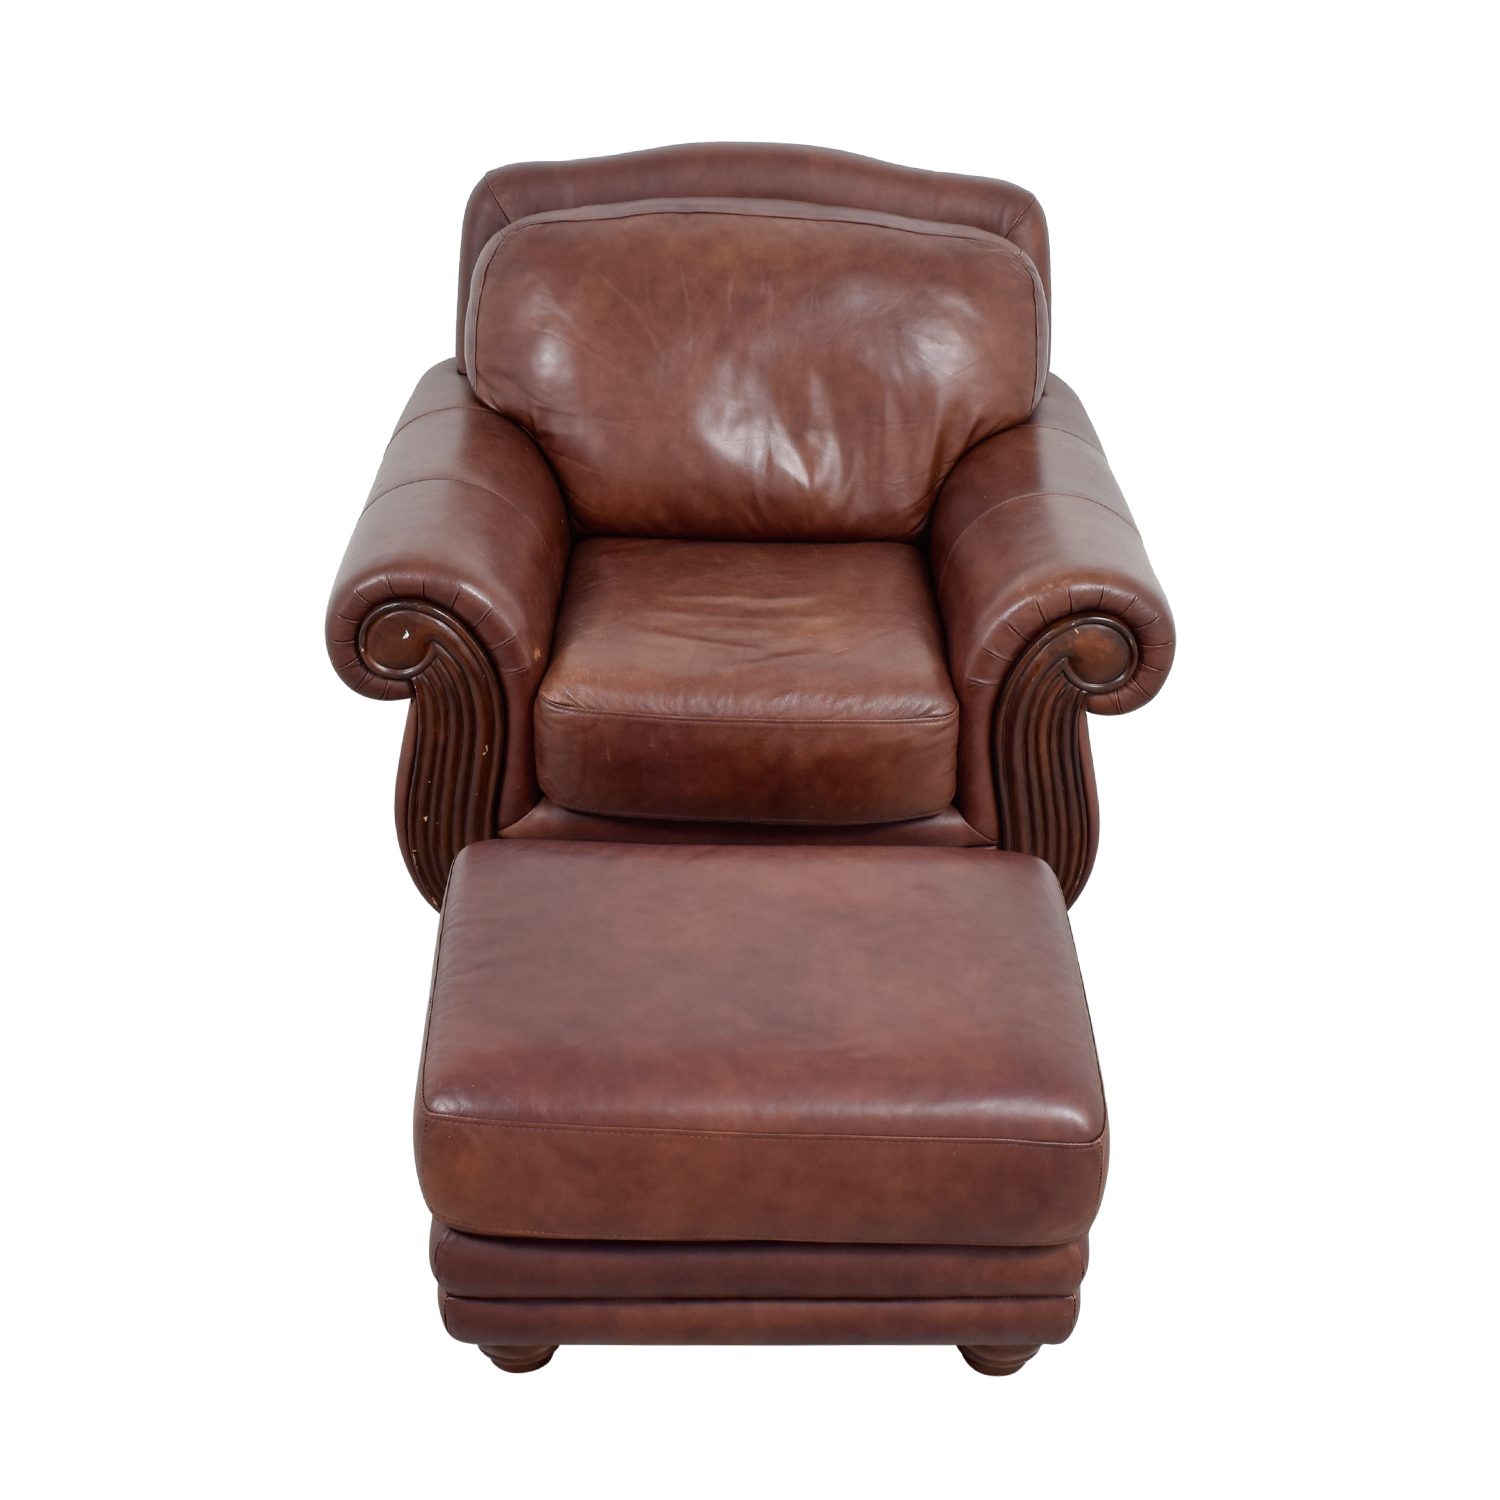 54 OFF  Rooms To Go Rooms To Go Brown Leather Chair and